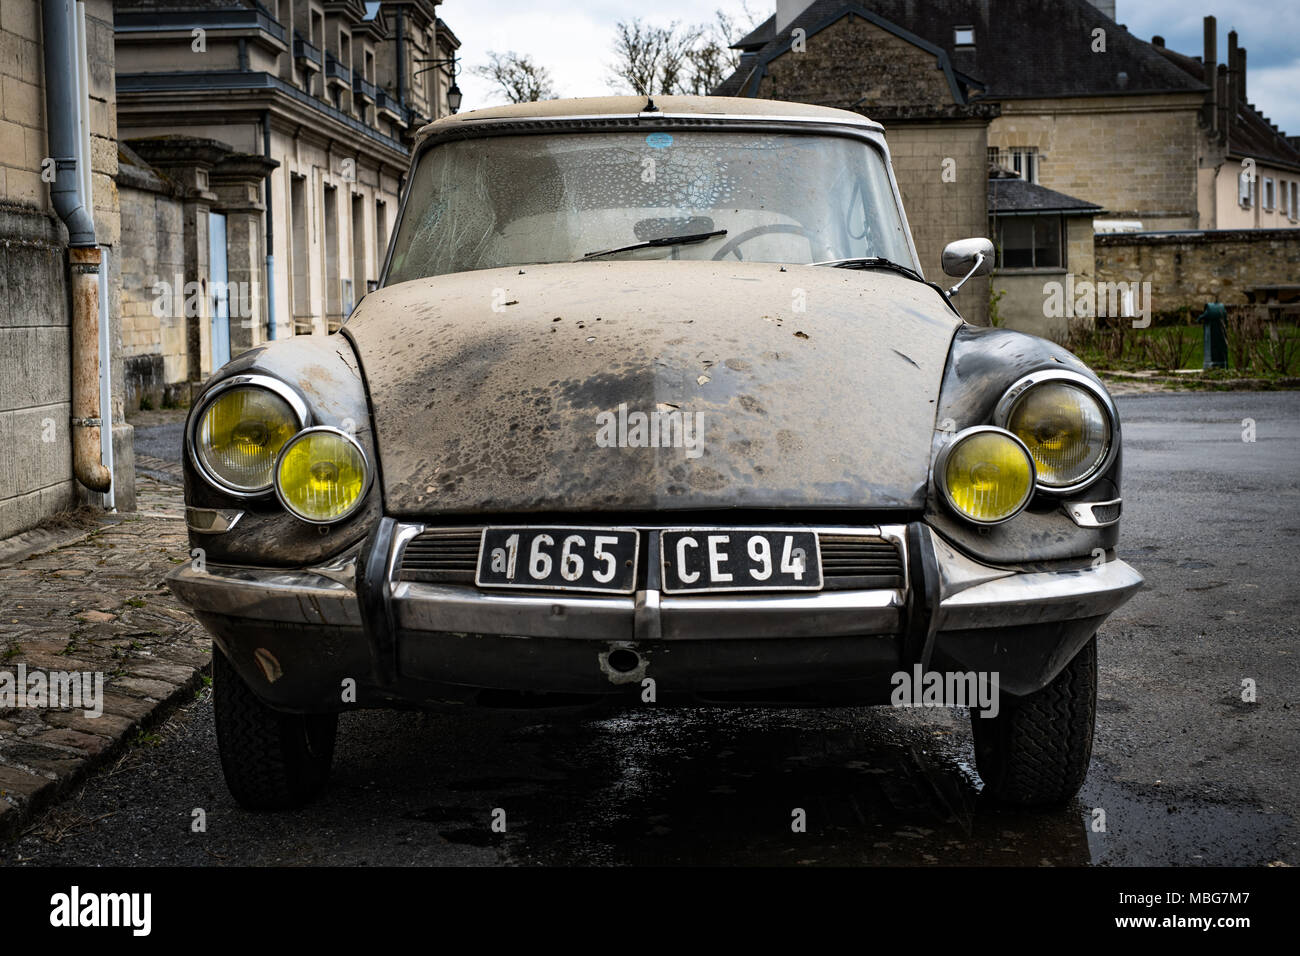 Citroën Car Classic 1964 French in need of restoration Stock Photo ...